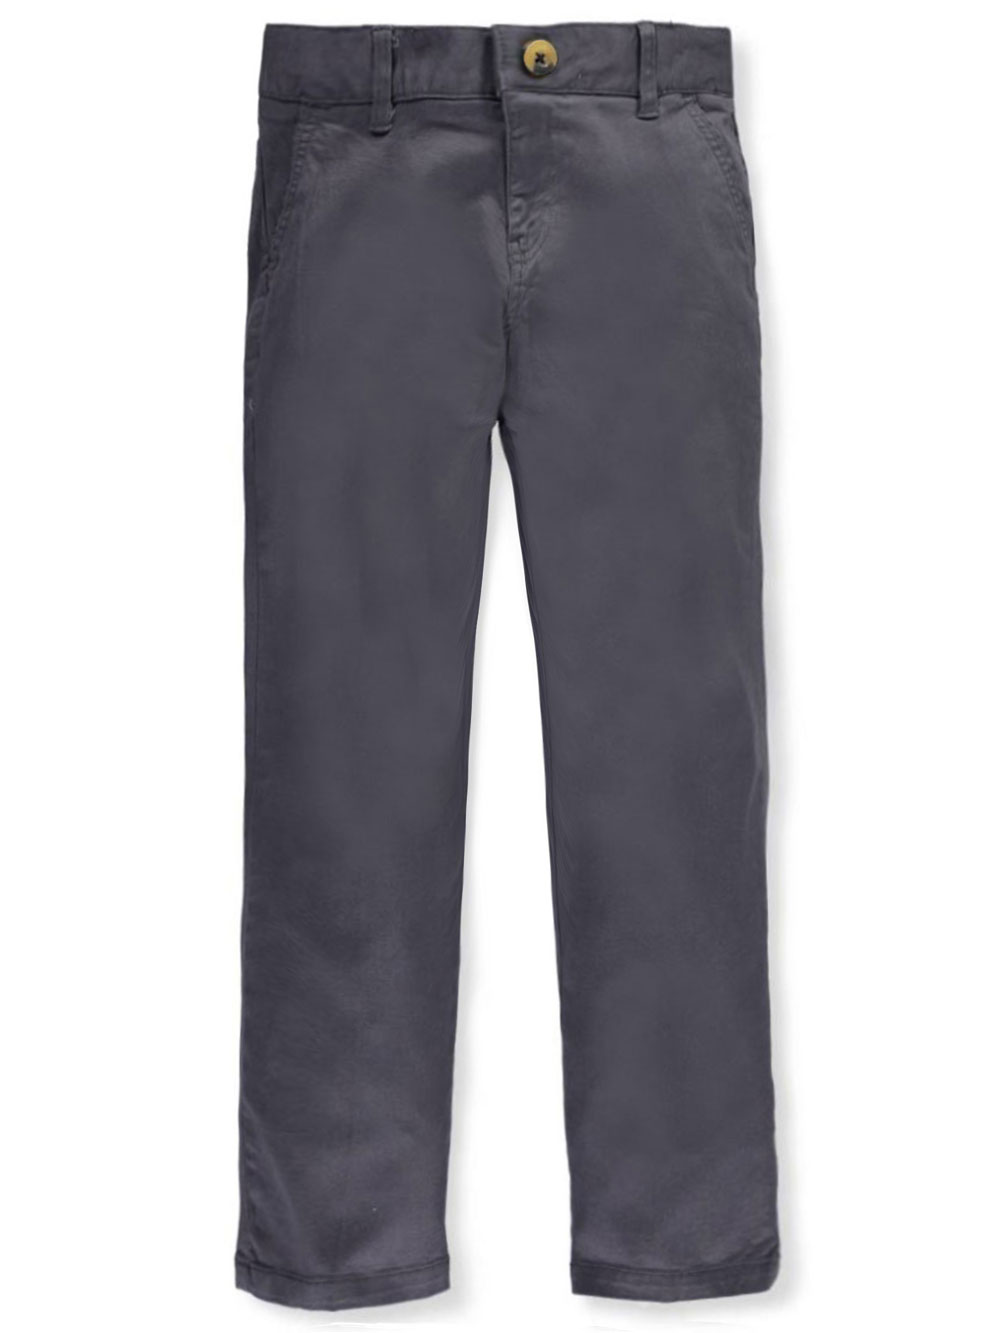 Twill Straight Fit Chino Pants